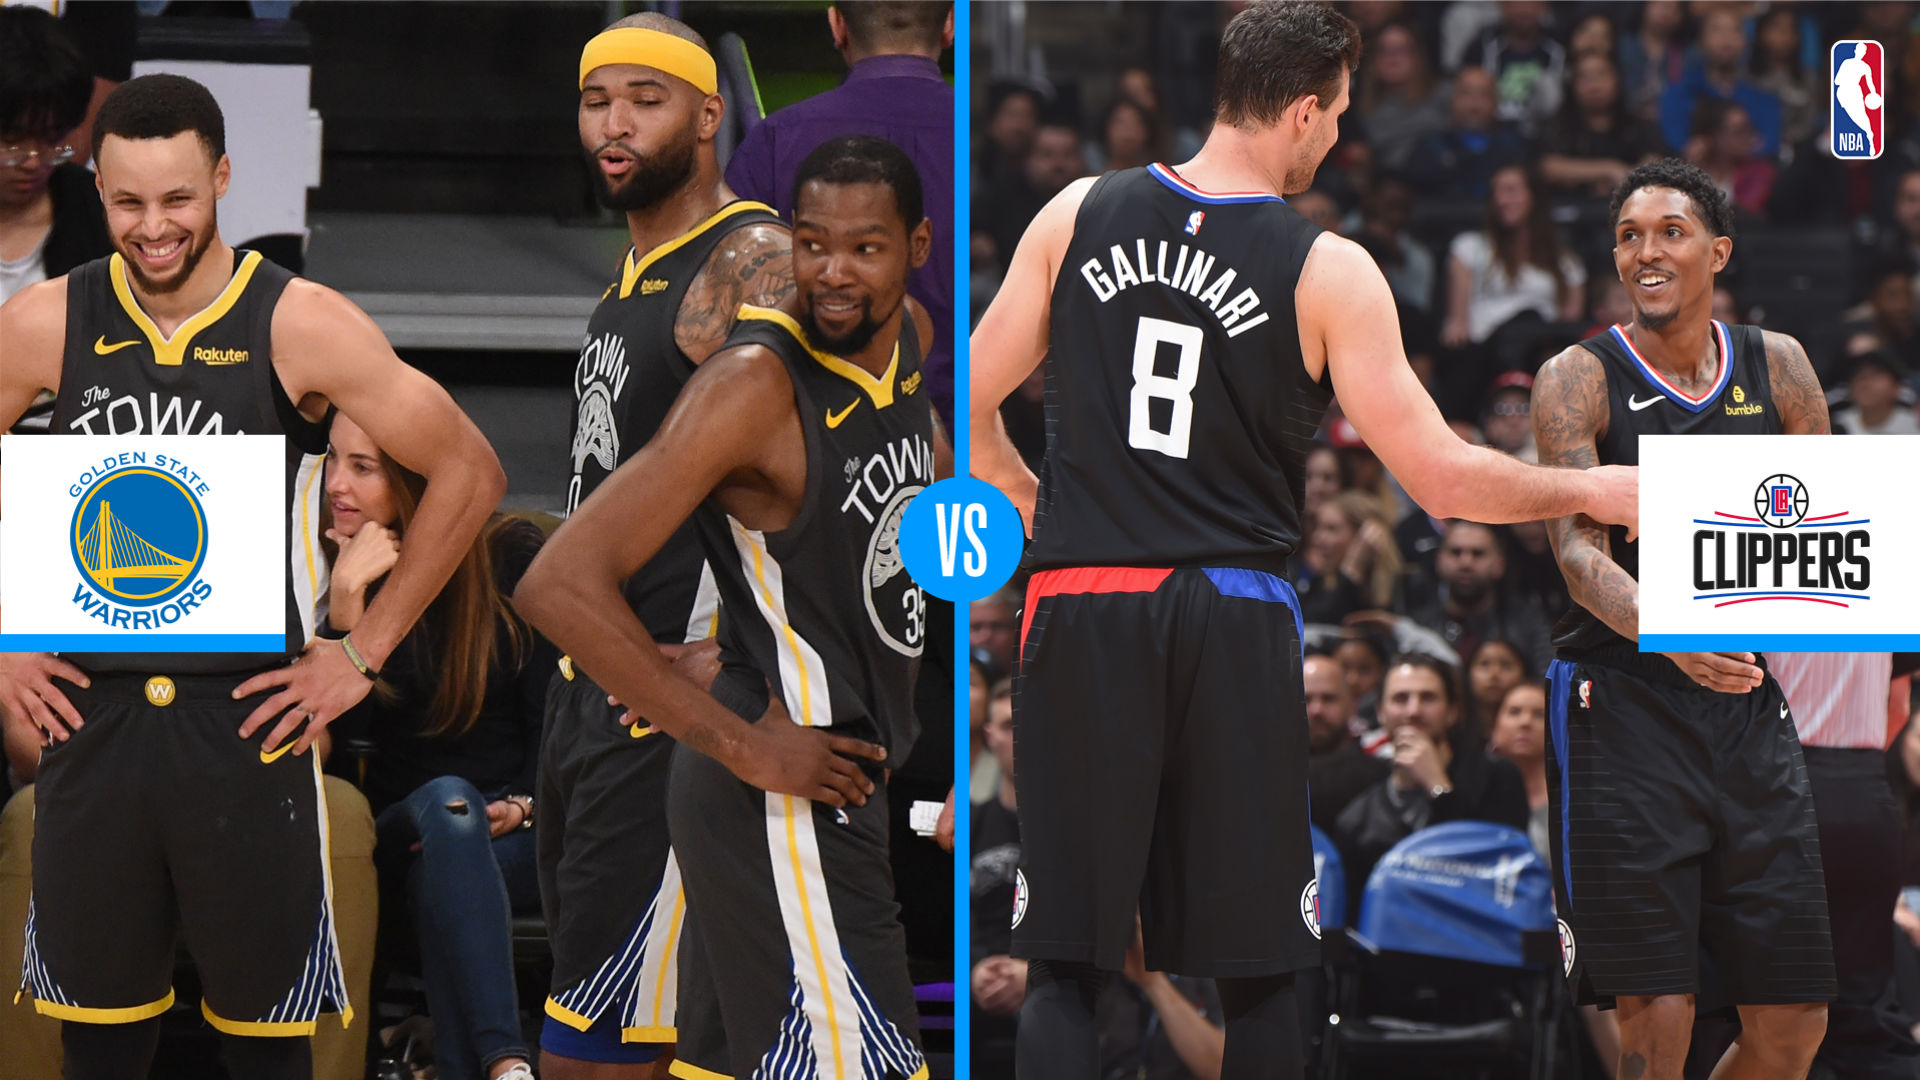 Clippers Vs Golden State Live